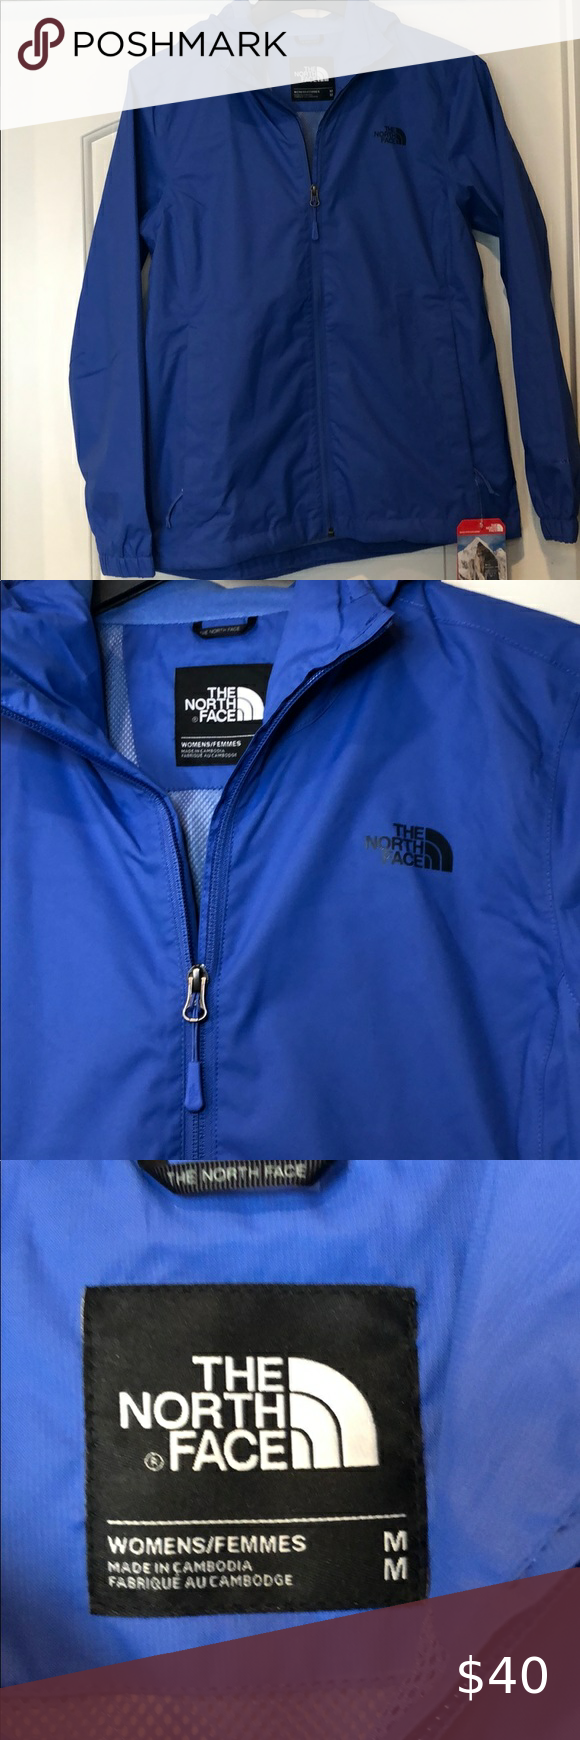 Brand New North Face Jacket North Face Jacket Jackets The North Face [ 1740 x 580 Pixel ]